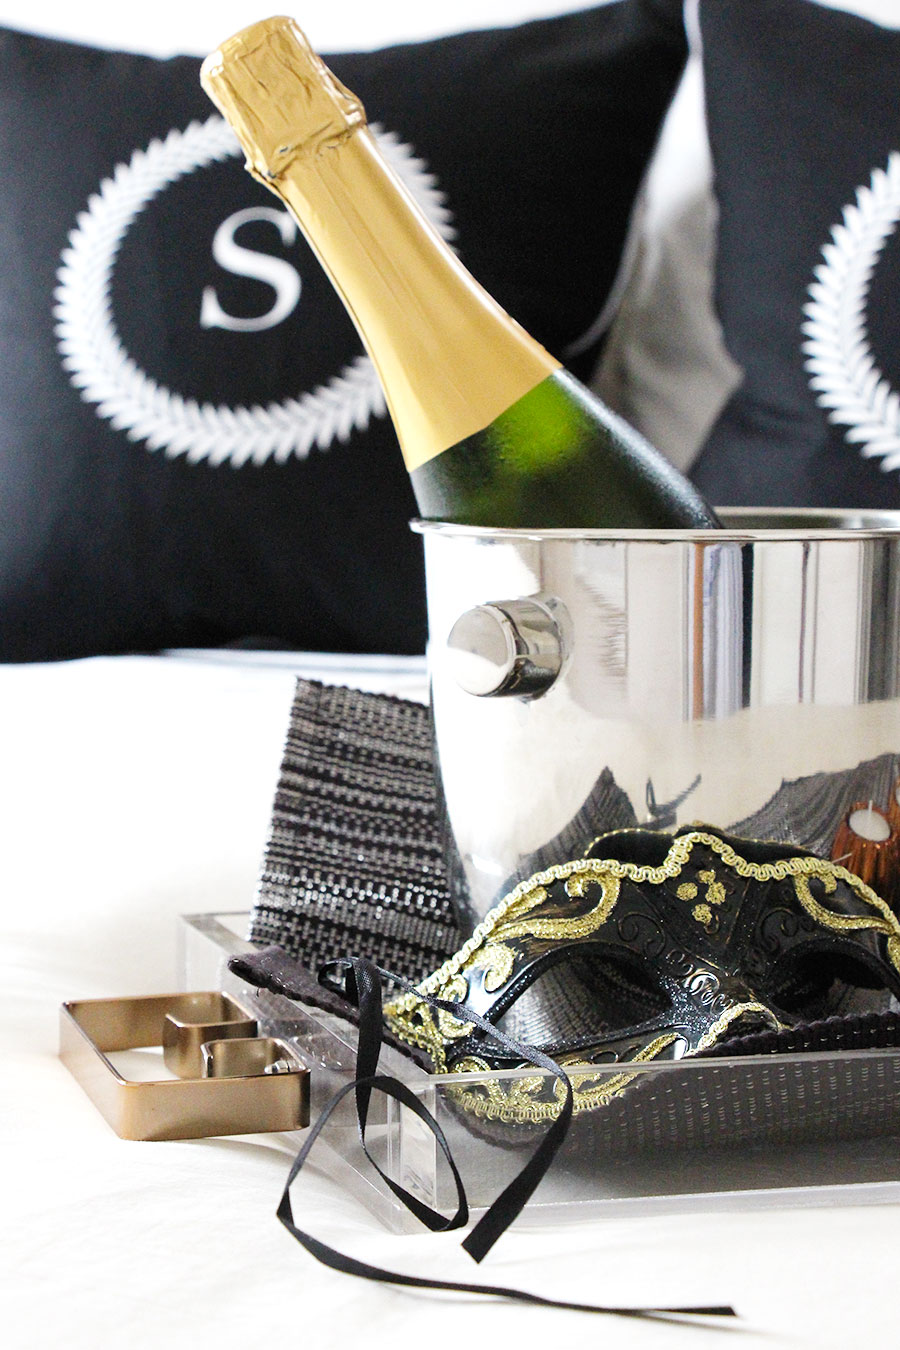 champagne-for-two-in-bed-sexy-date-night.jpg